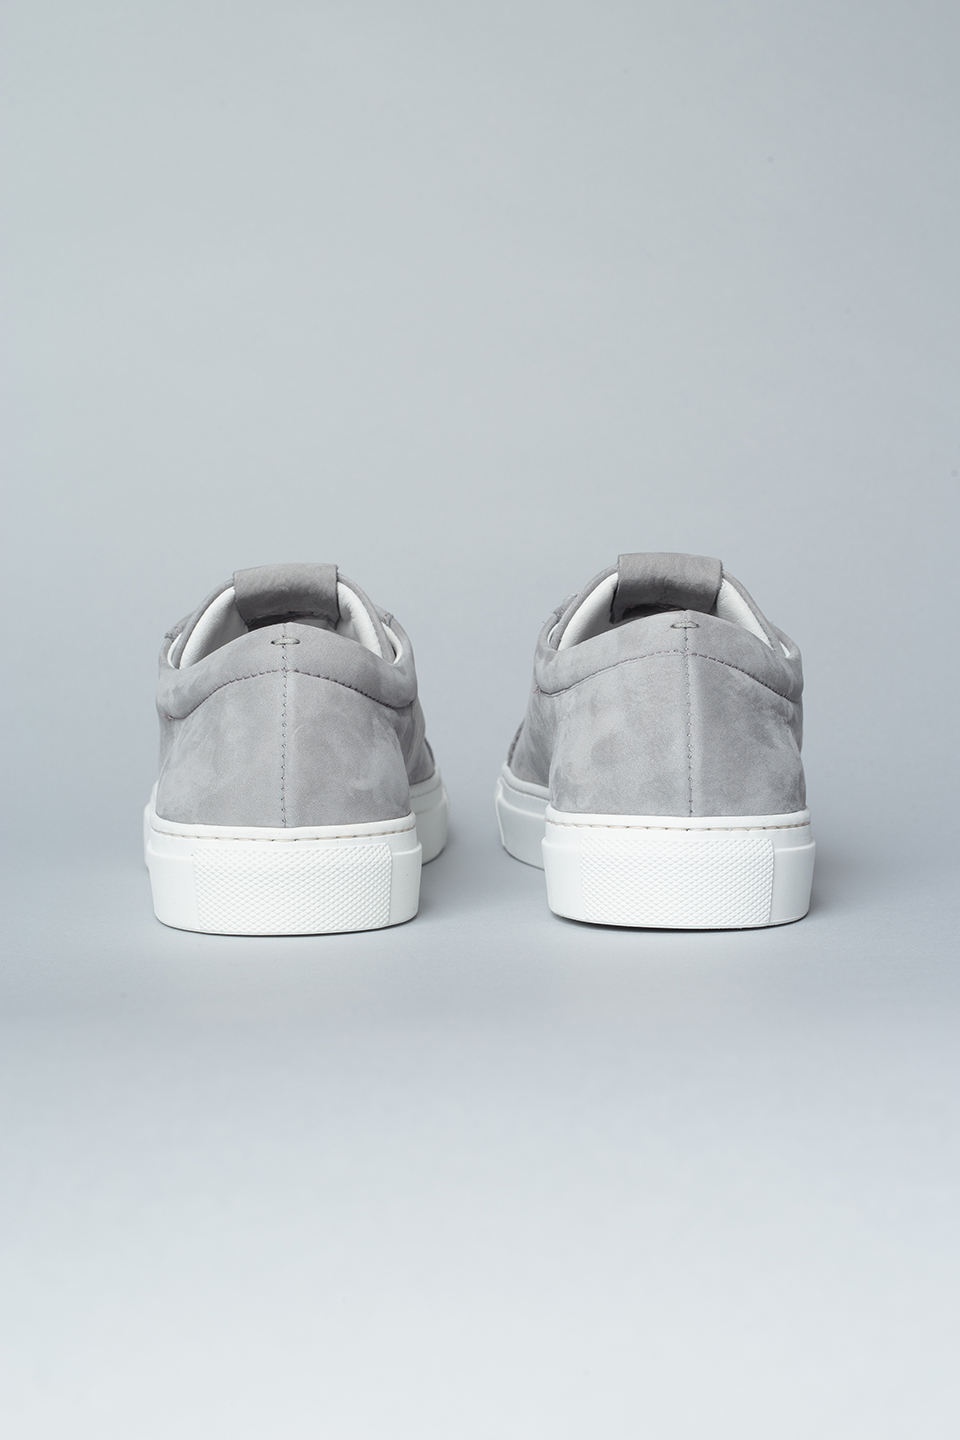 CPH4 nabuc light grey - alternative 2